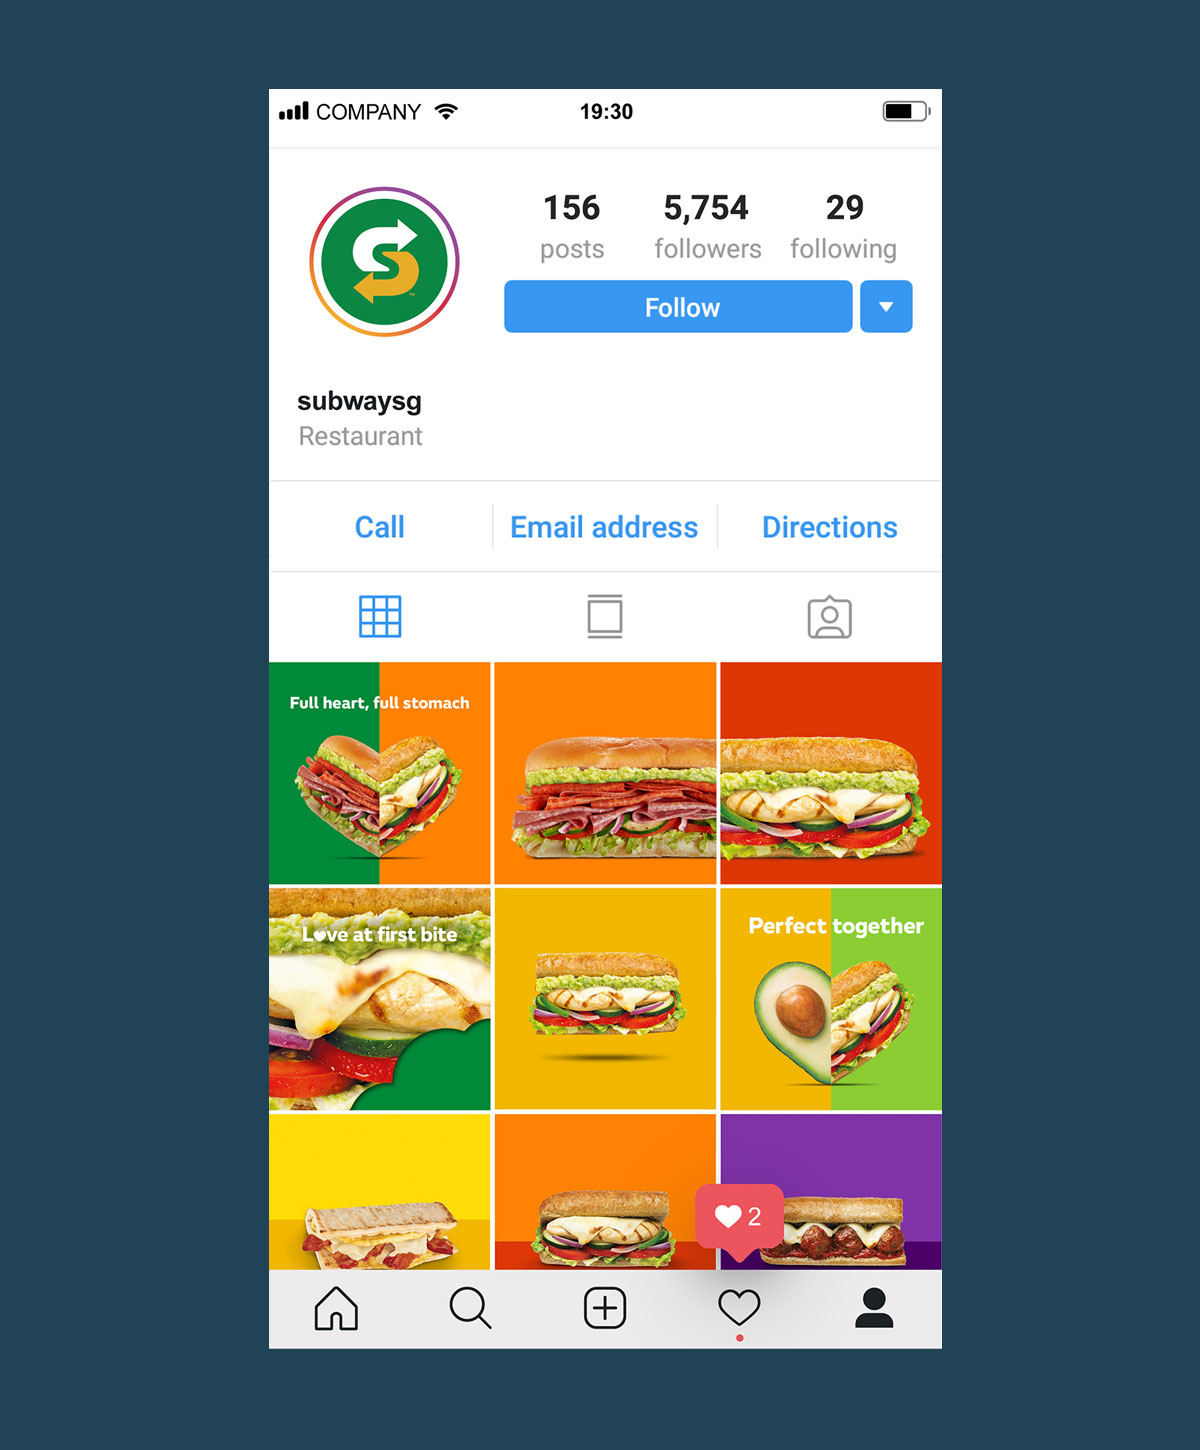 A seamless grid on Subway's Instagram page, formed by  visually striking visuals of sandwiches and fresh ingredients